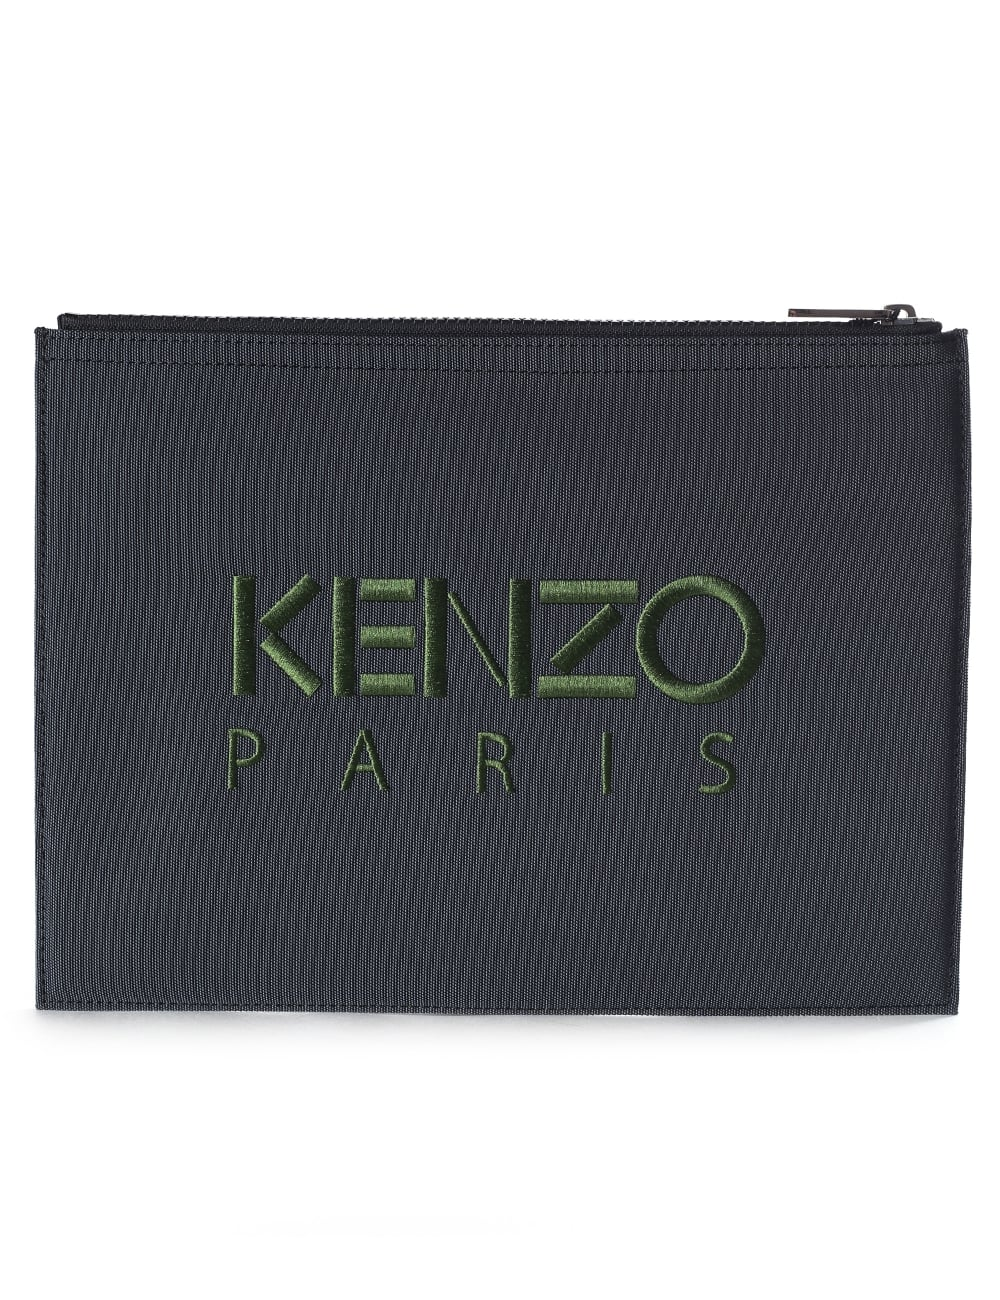 Exclusive For Sale Outlet Wide Range Of Kenzo Tiger clutch Marketable Sale Online gNf0C